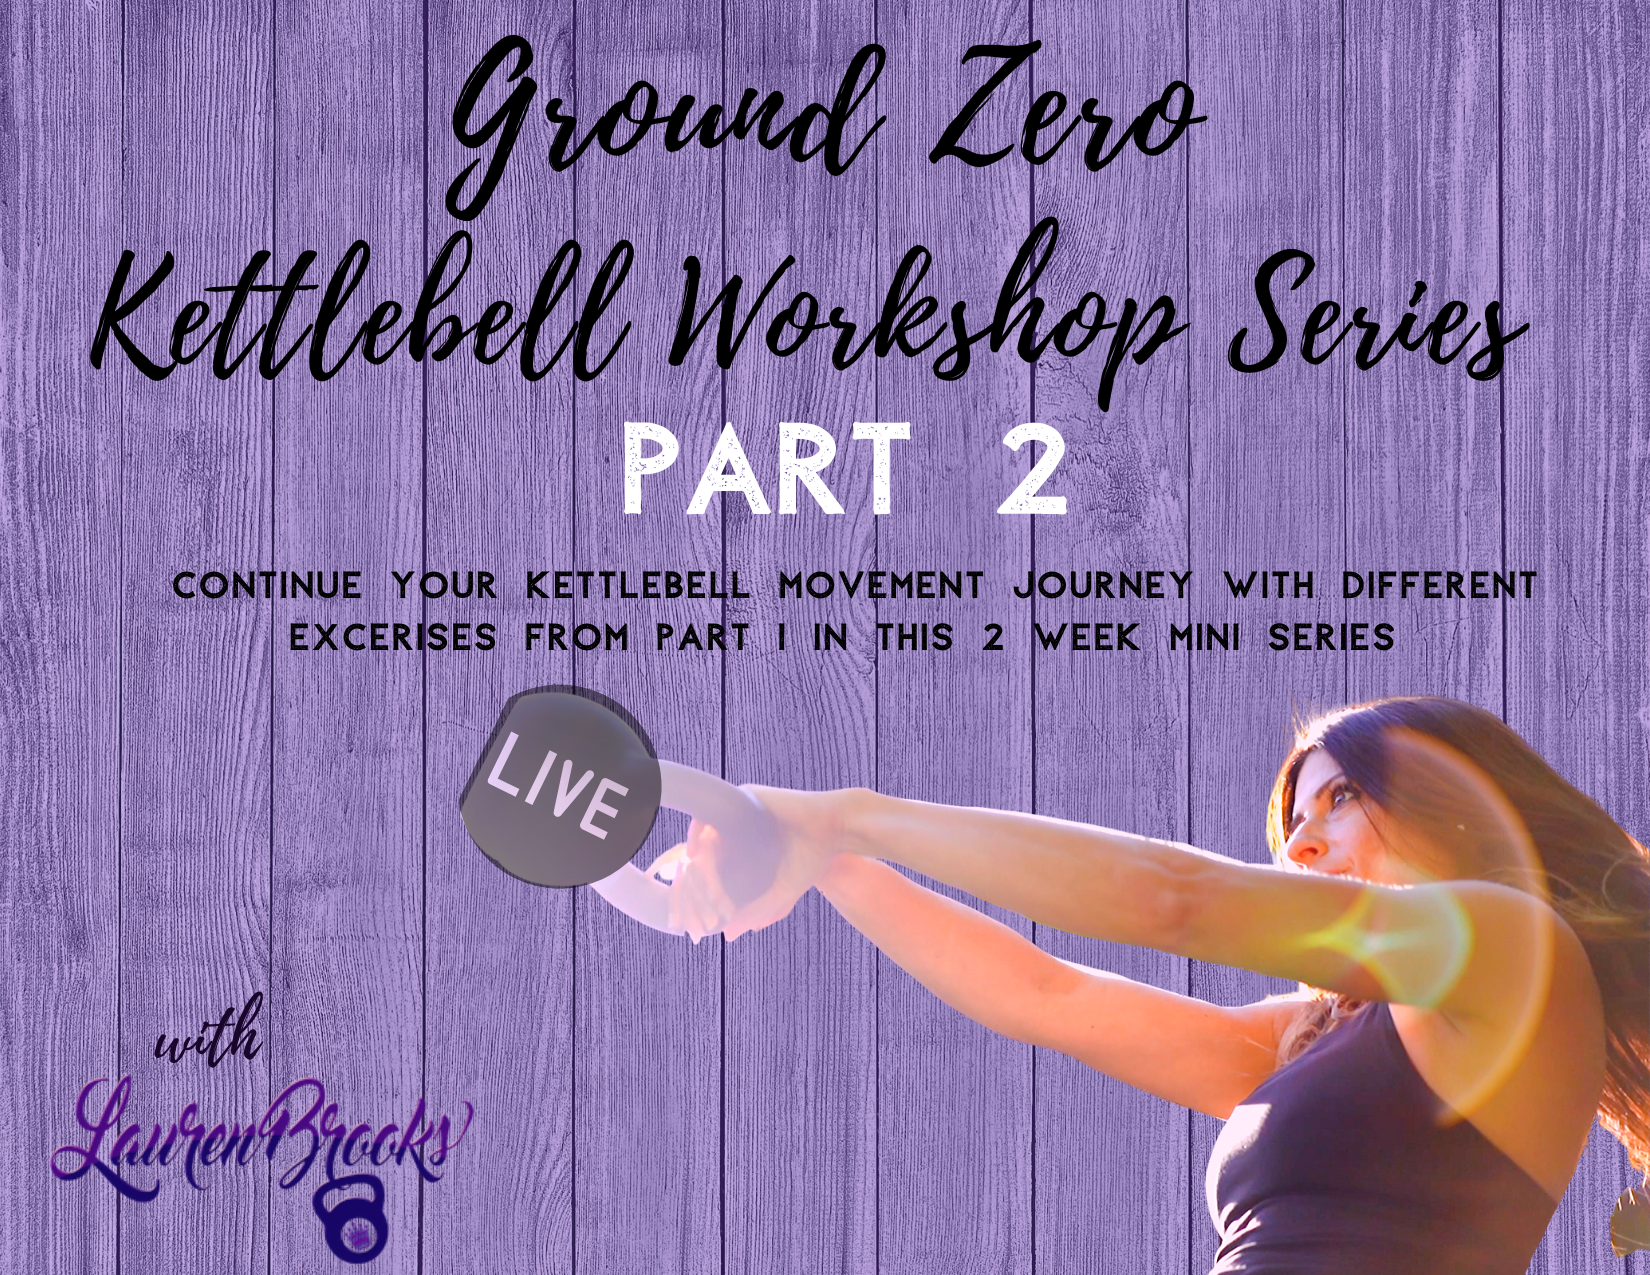 Ground Zero Kettlebell Workshop Series (Part 2)